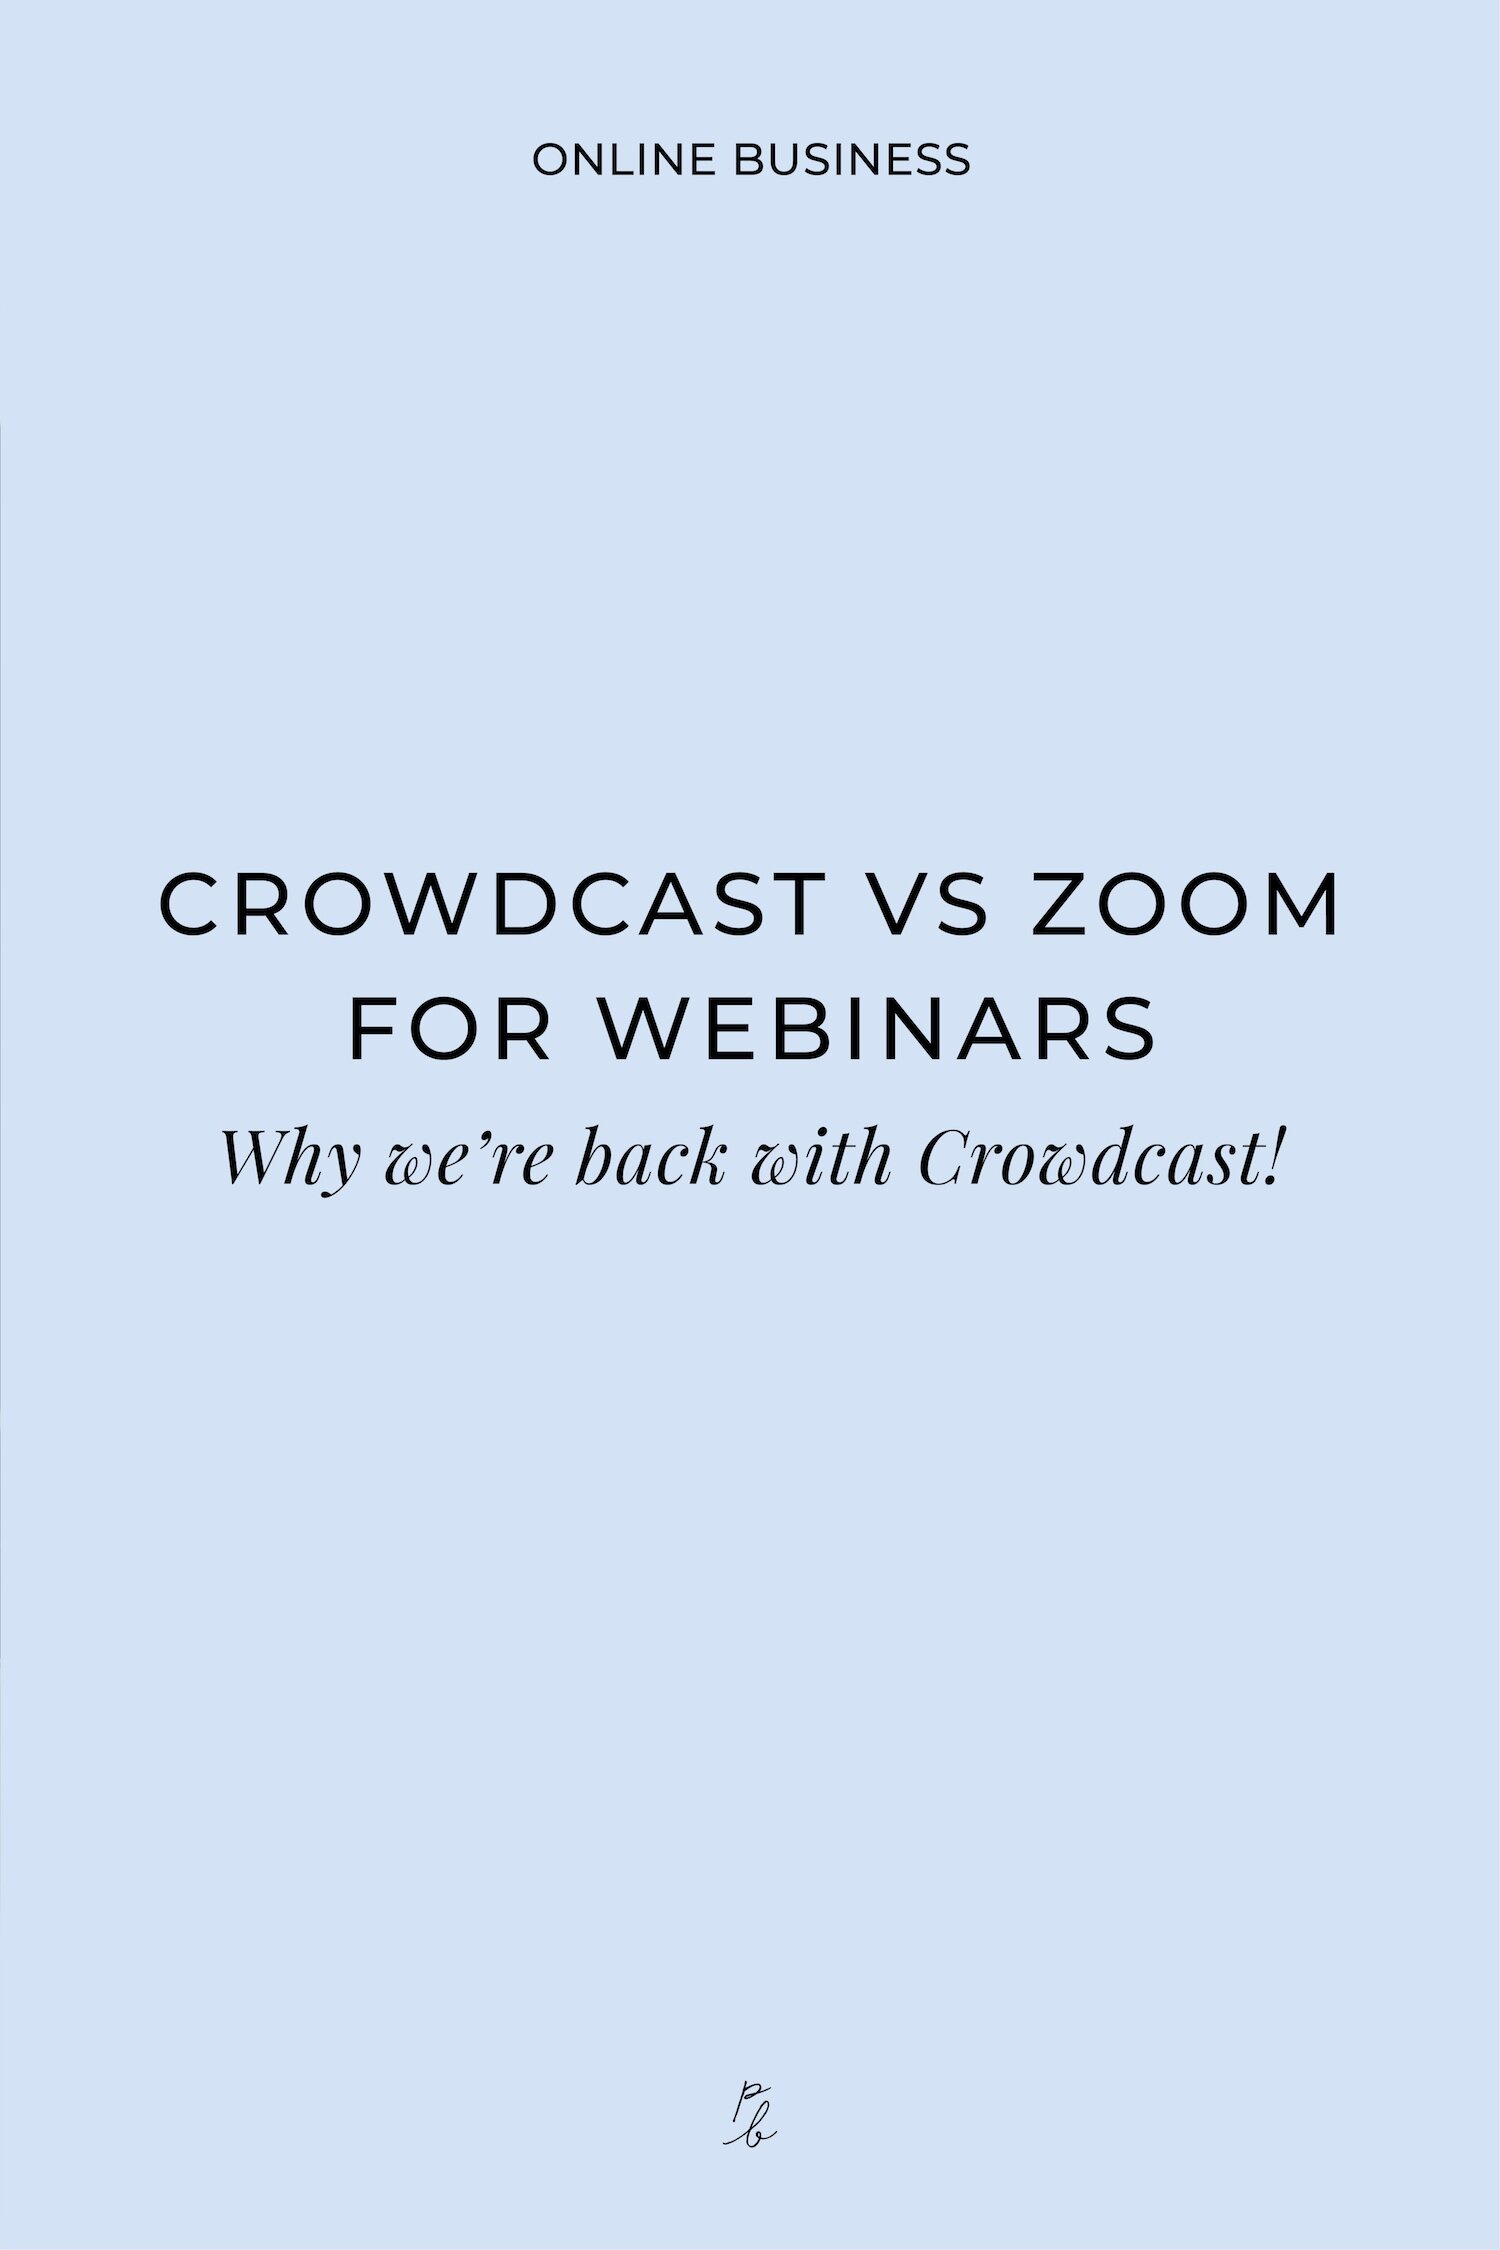 Crowdcast vs Zoom for webinars. Why we're back with Crowdcast!1.jpeg